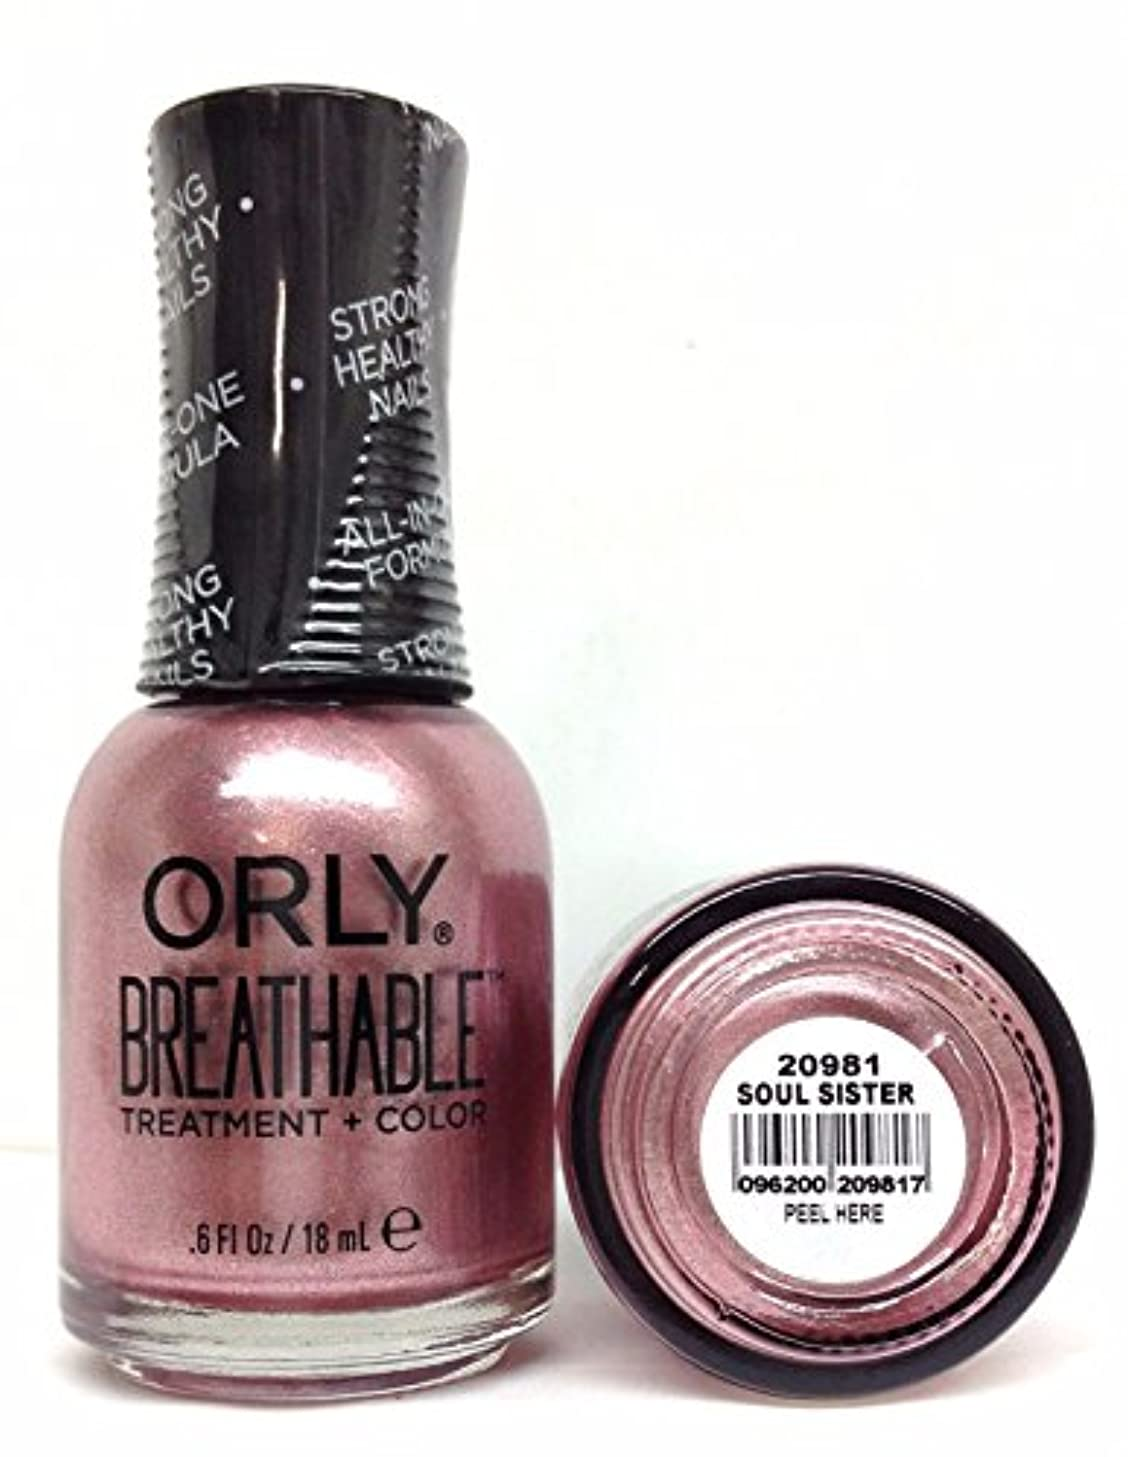 Orly Breathable Nail Lacquer - Treatment + Color - Soul Sister - 0.6 oz / 18 mL